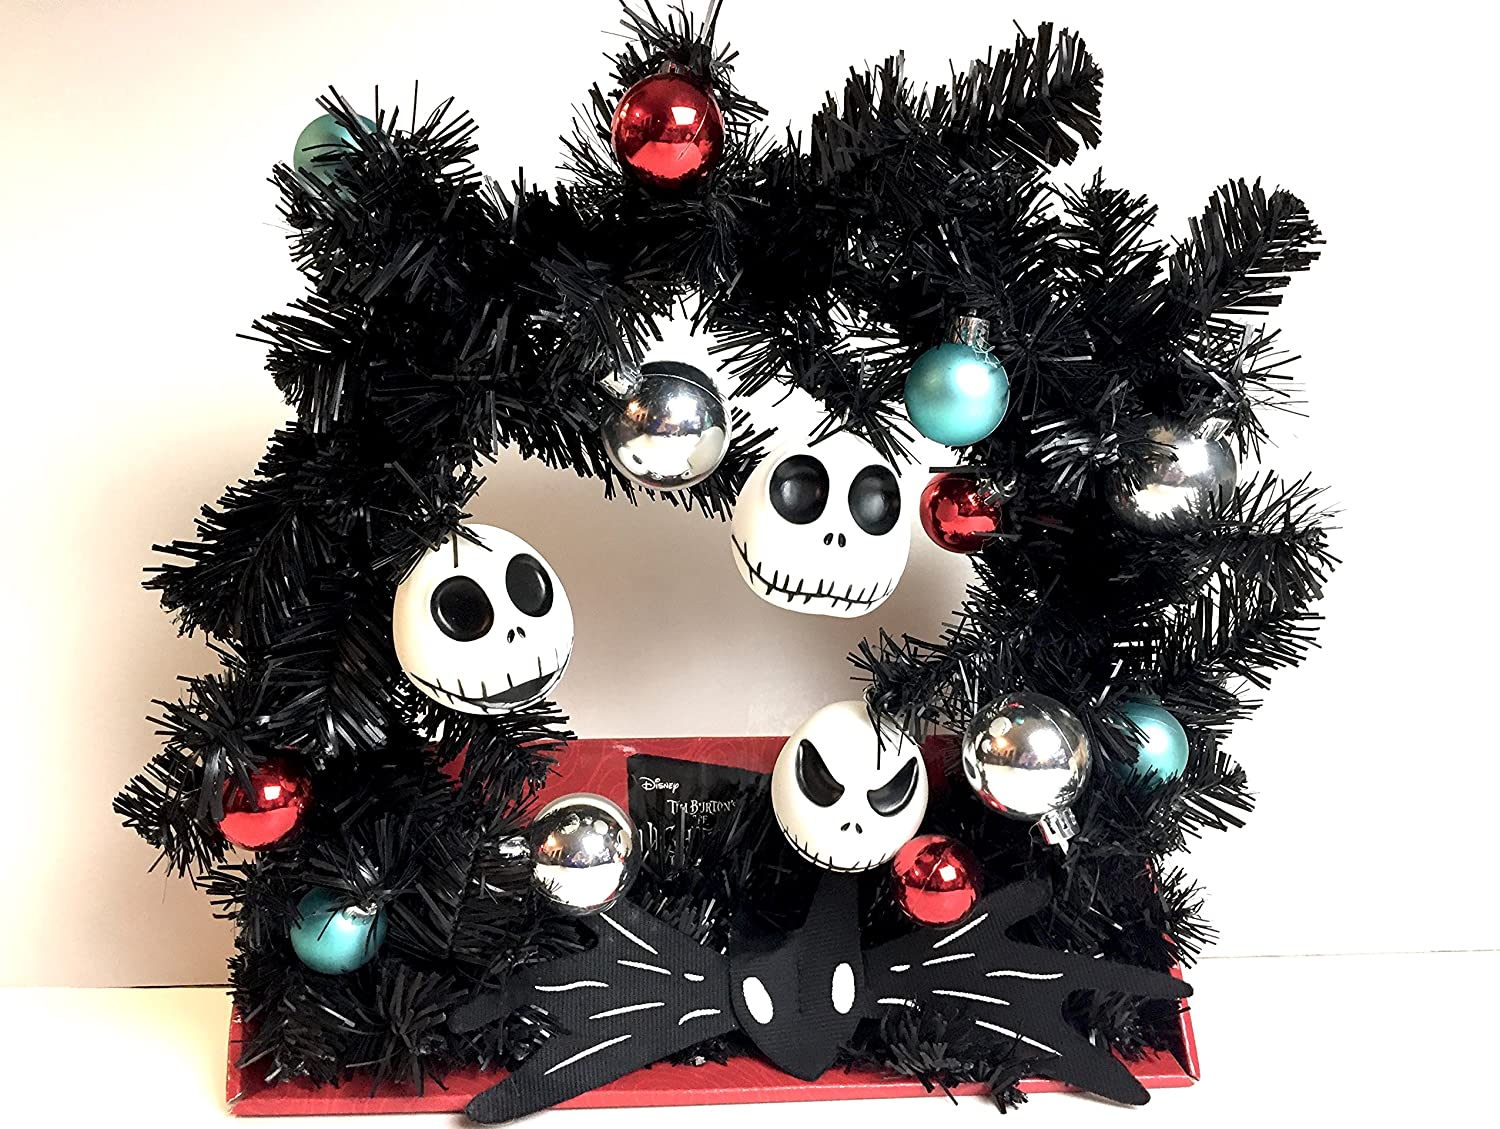 - Amazon.com: The Nightmare Before Christmas Decorated Wreath: Home